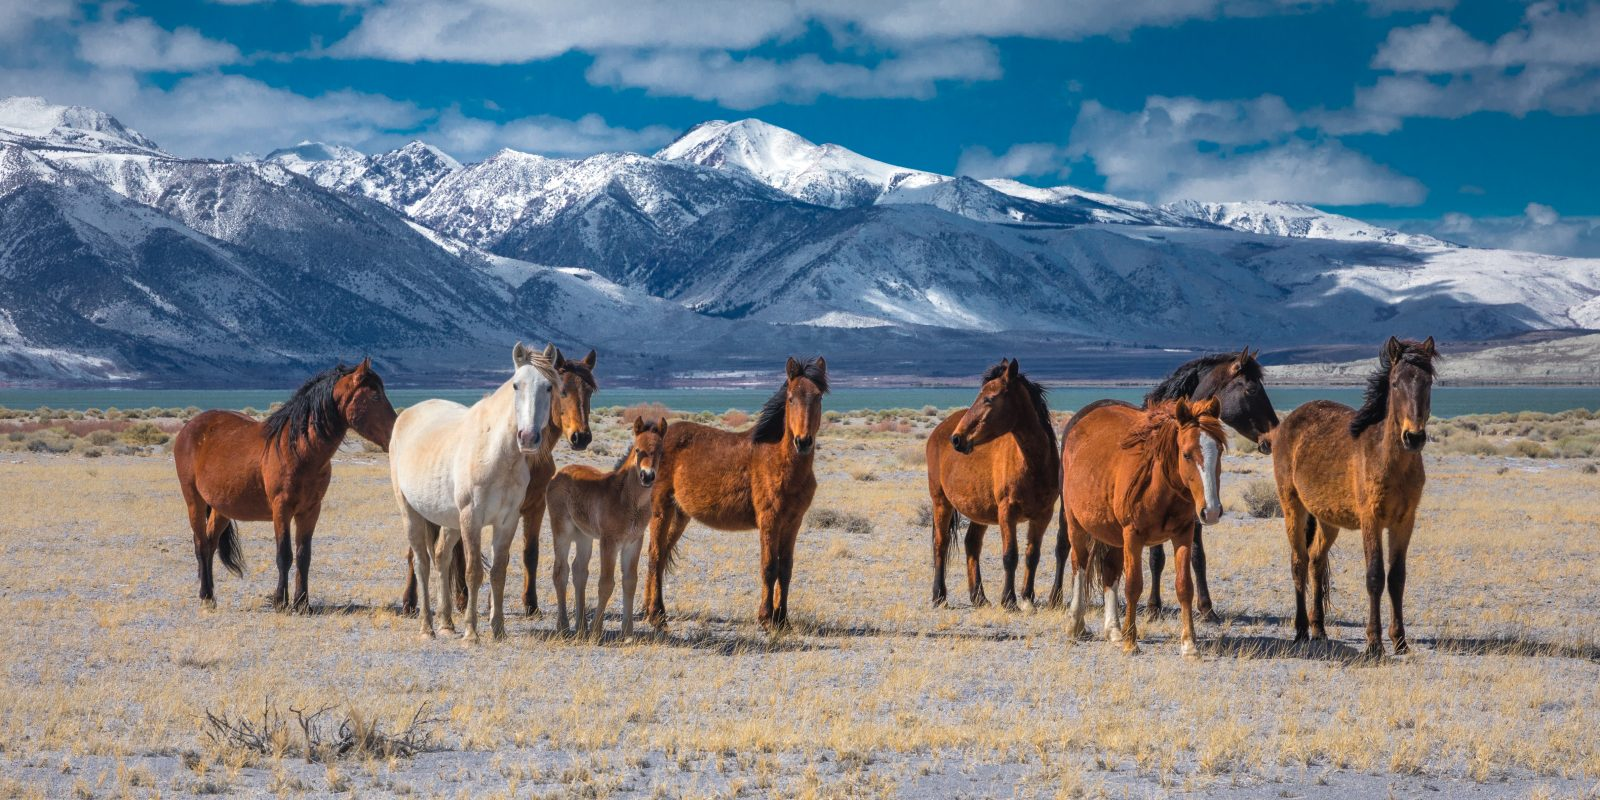 Moment with Mustangs